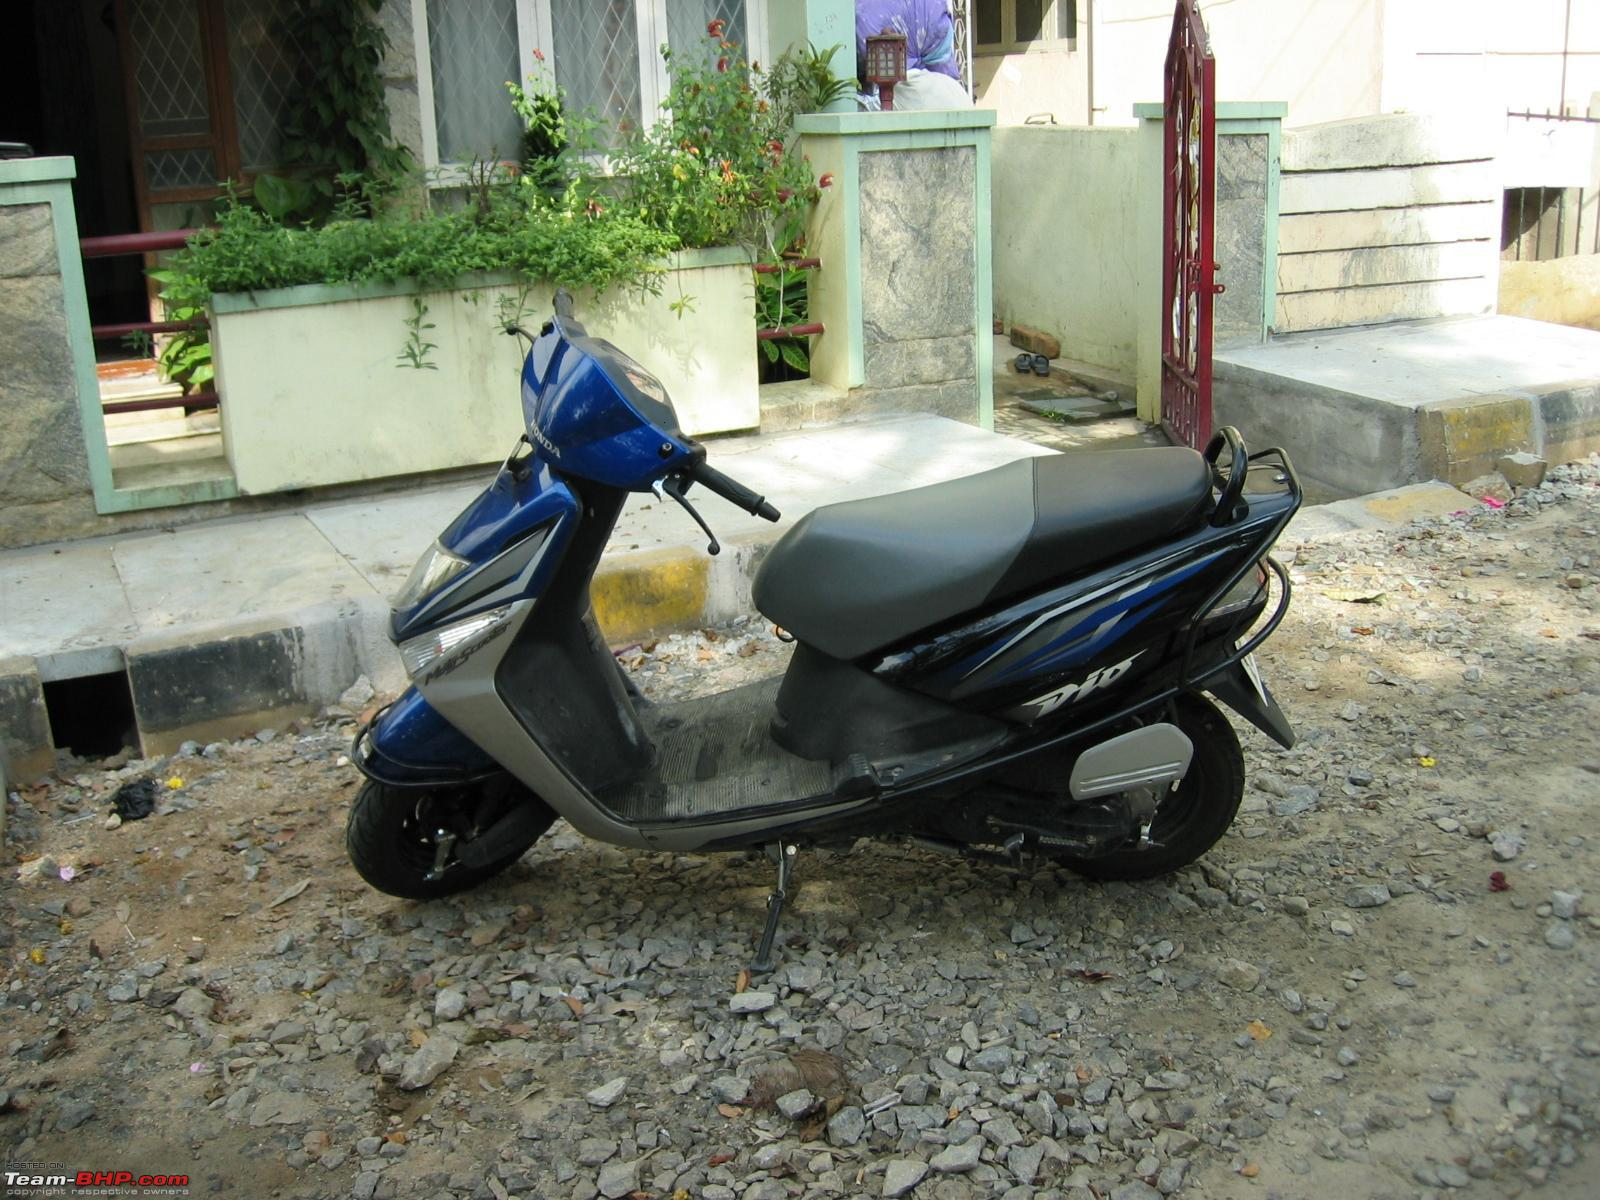 New honda dio launched img 0002 jpg